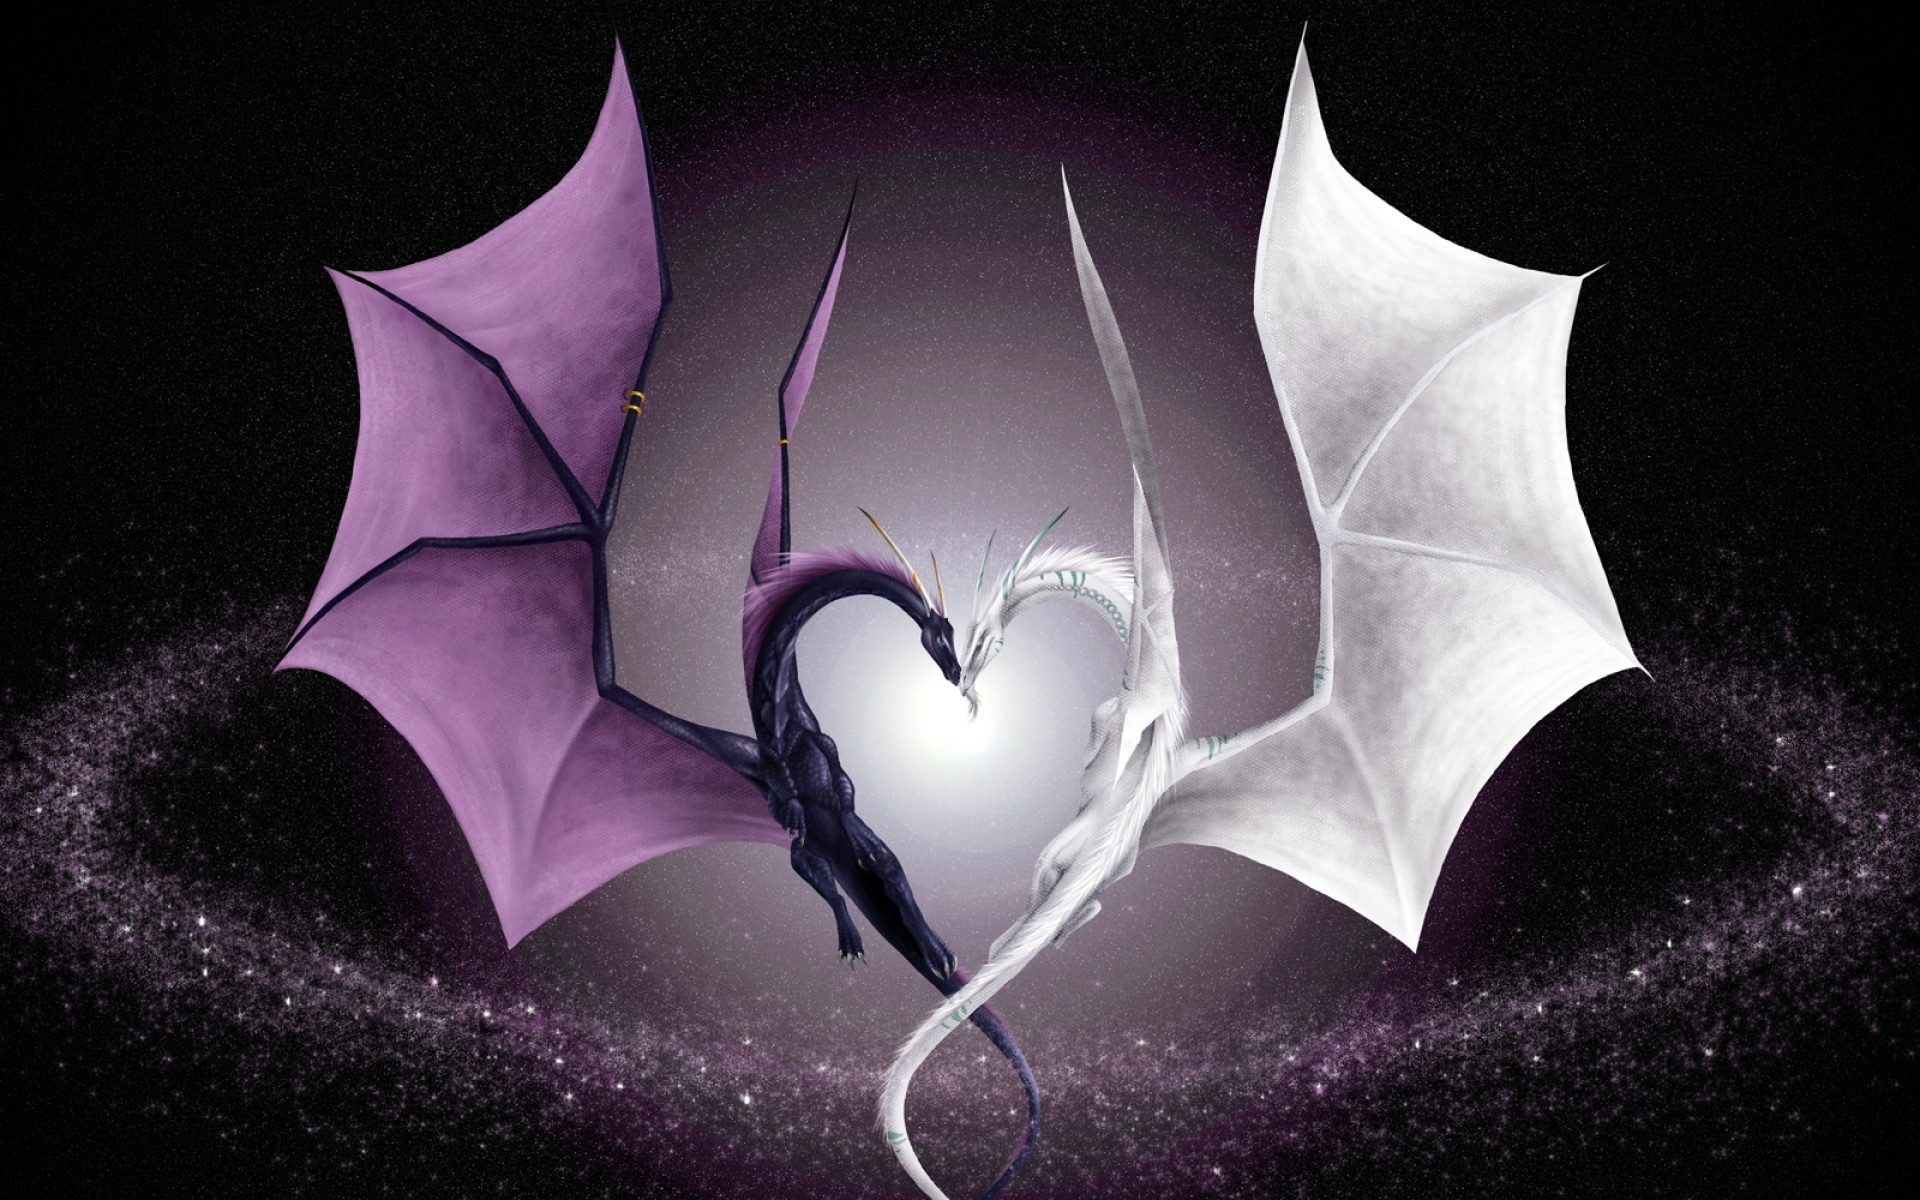 love_black_dragons_stars_hearts_1600x1200_wallpaper_wallpaper_1920x1200_www-wall321-com